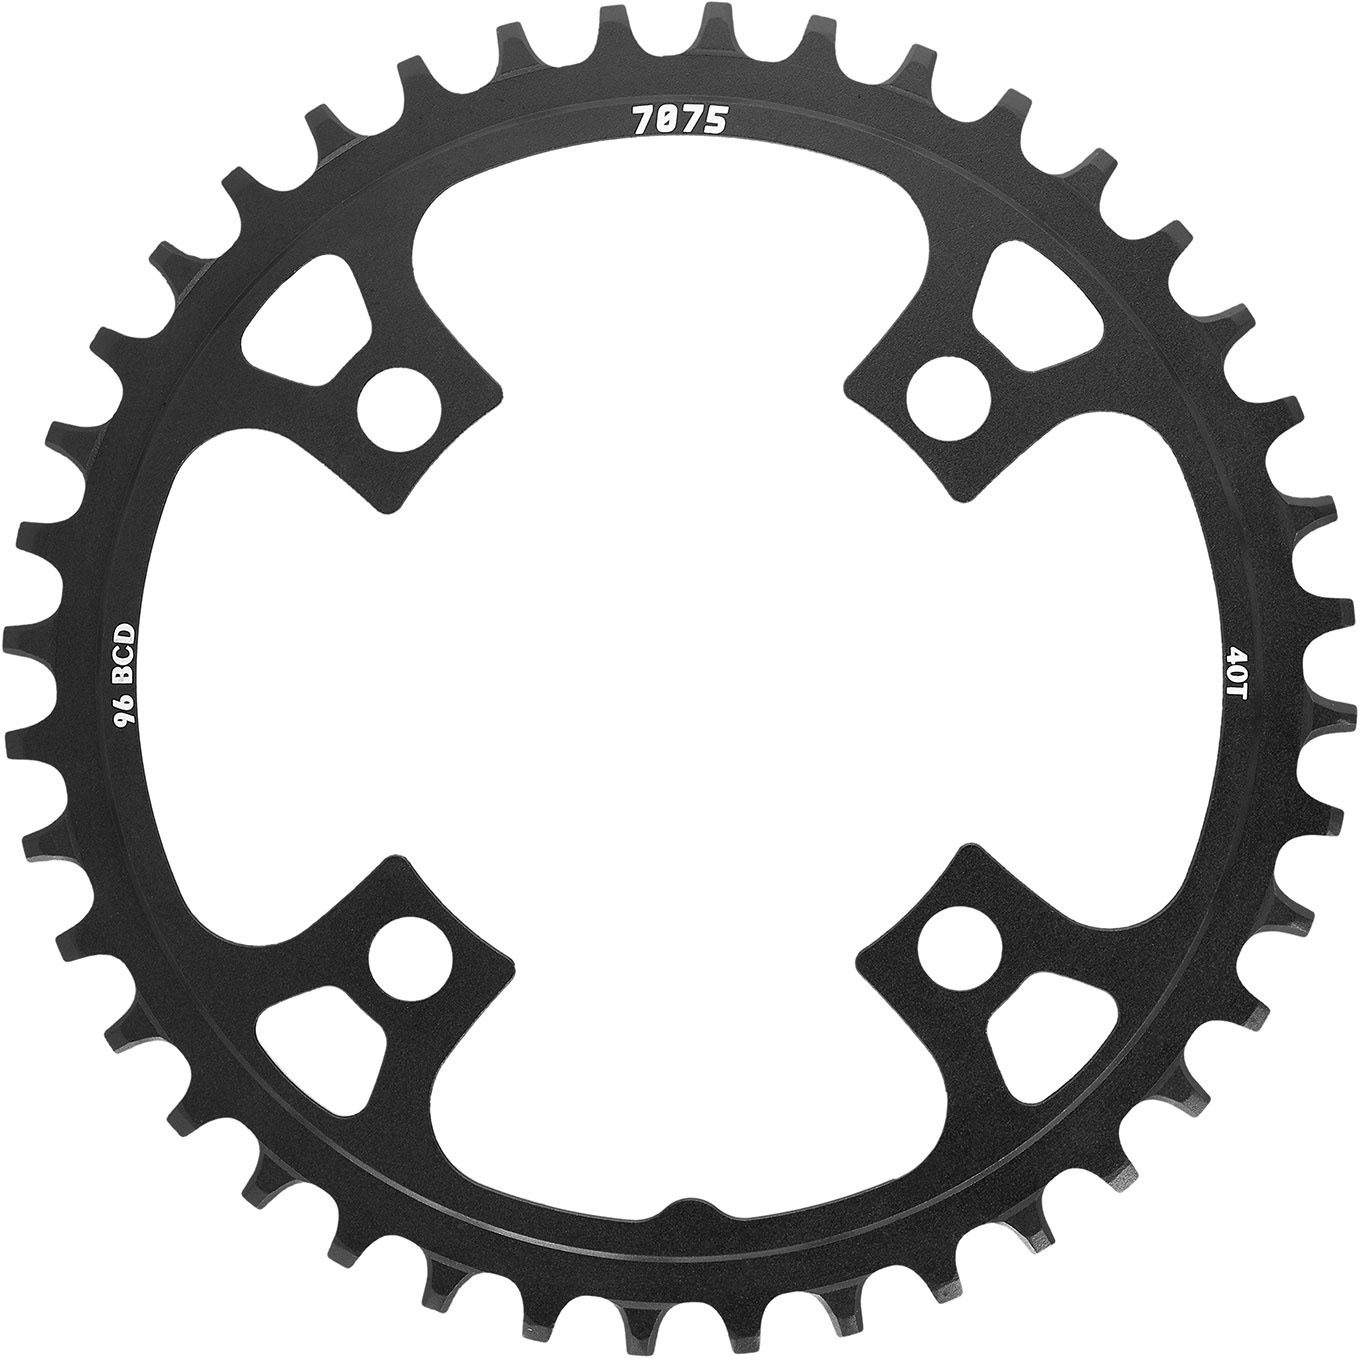 SunRace MX00 Alloy Chainrings Black | chainrings_component